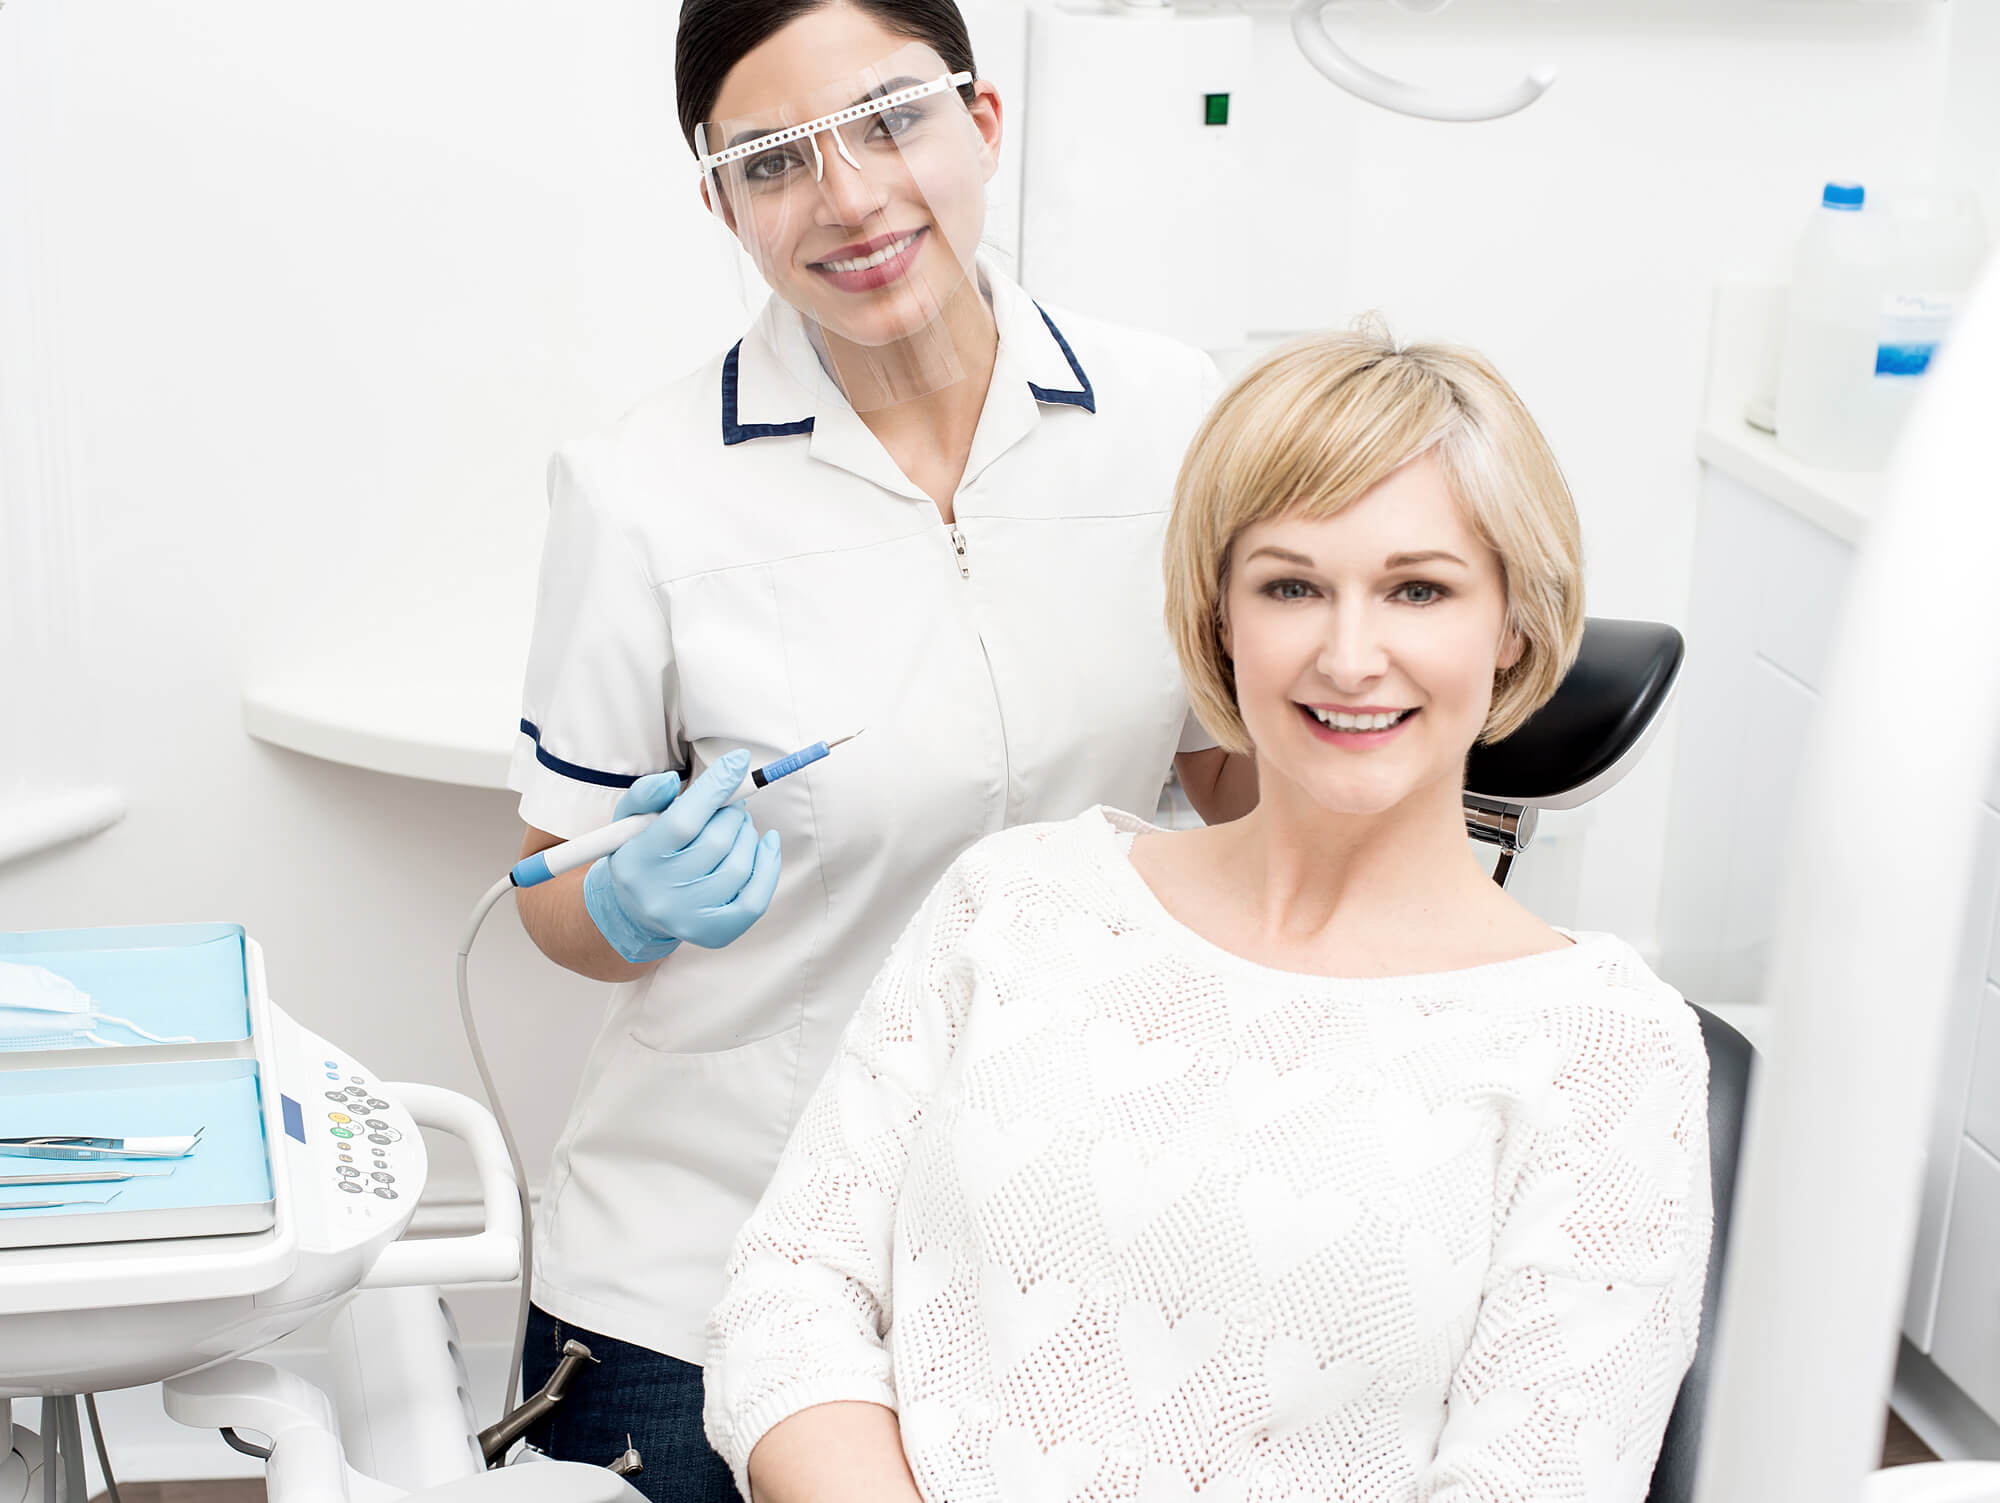 where is the best dentist in lake worth fl?